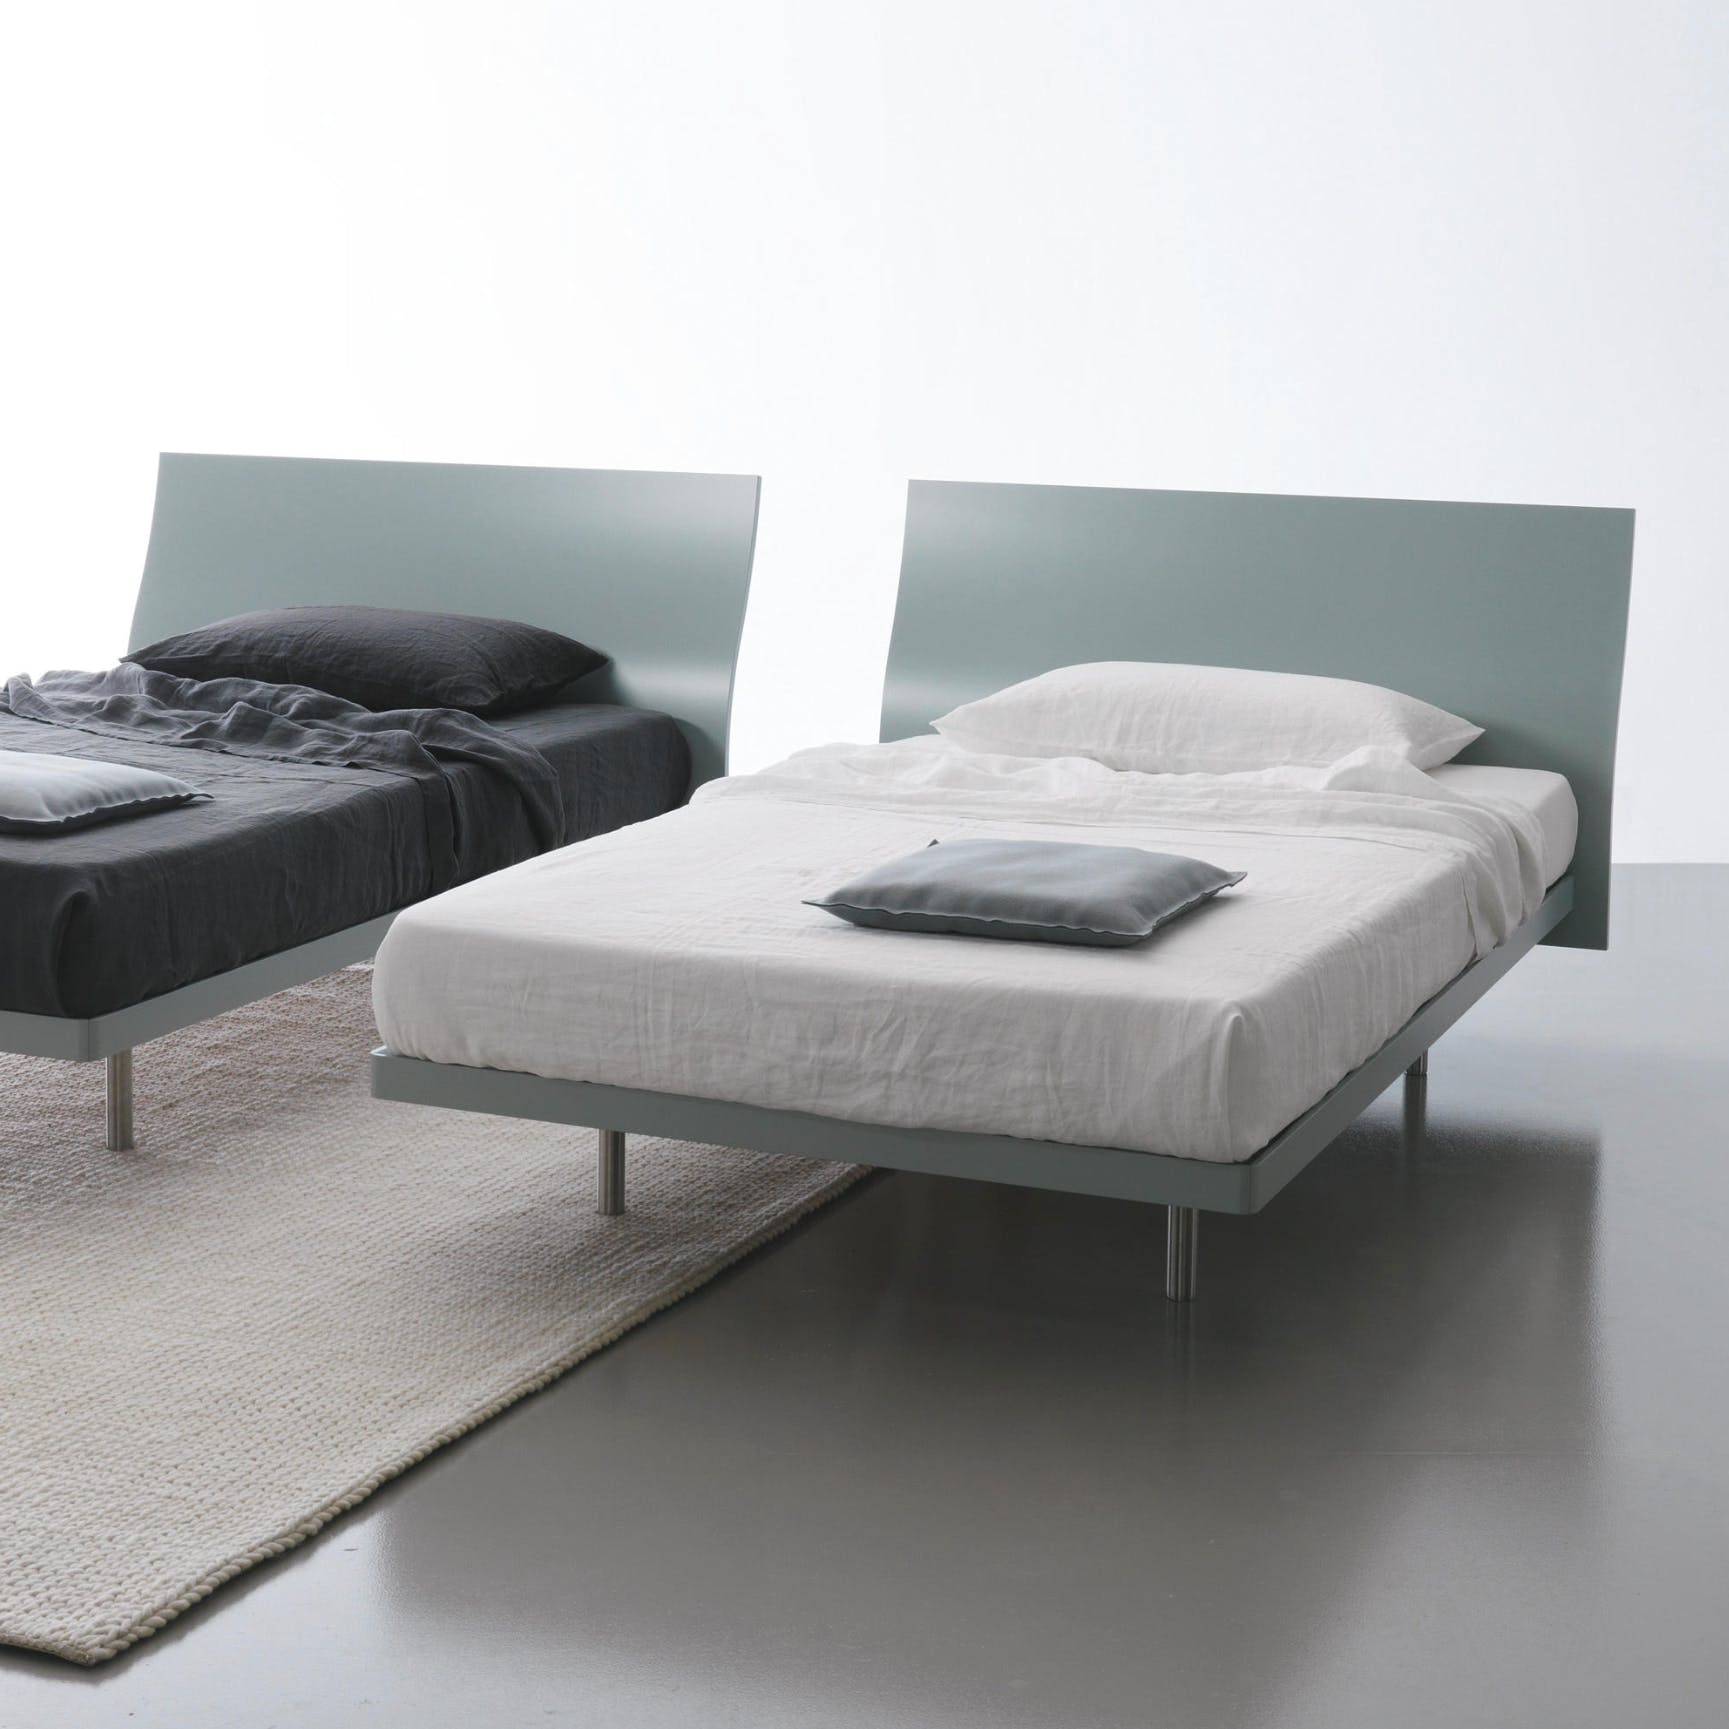 Caccaro Filesse Bed Double Haute Living 181212 205954